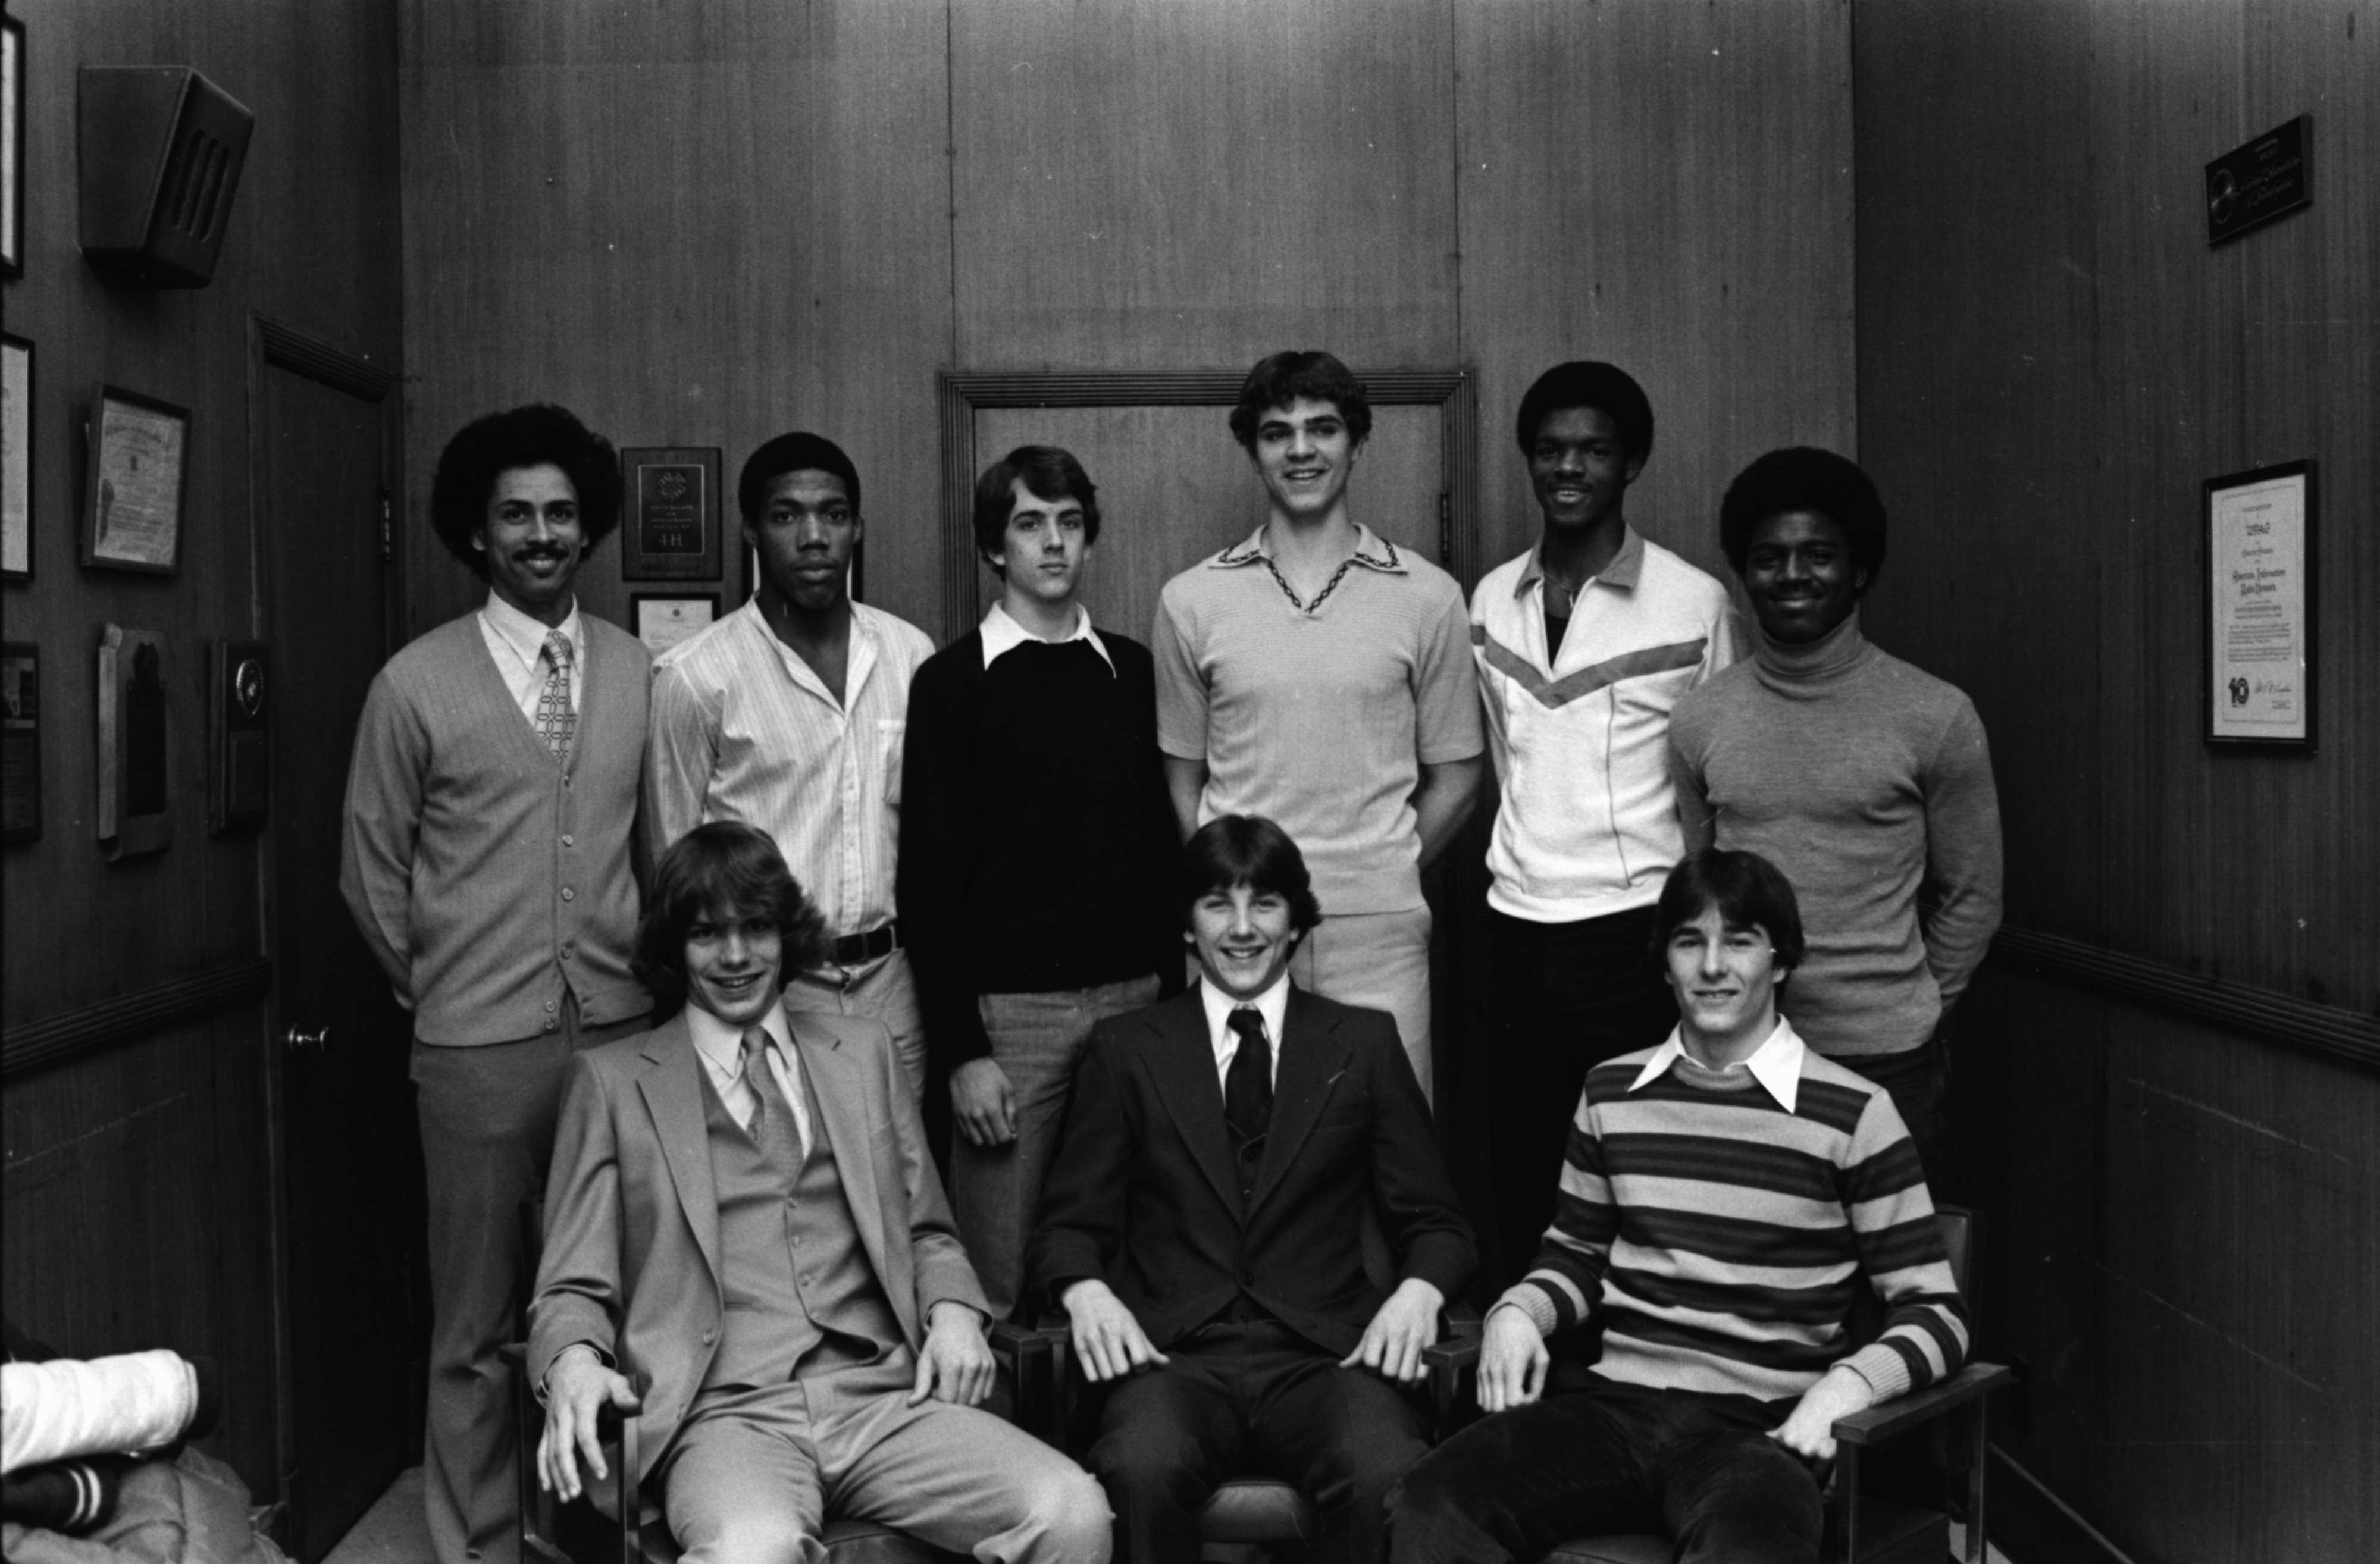 Coach Harold Simons and the All-County Basketball Team, March 1980 image